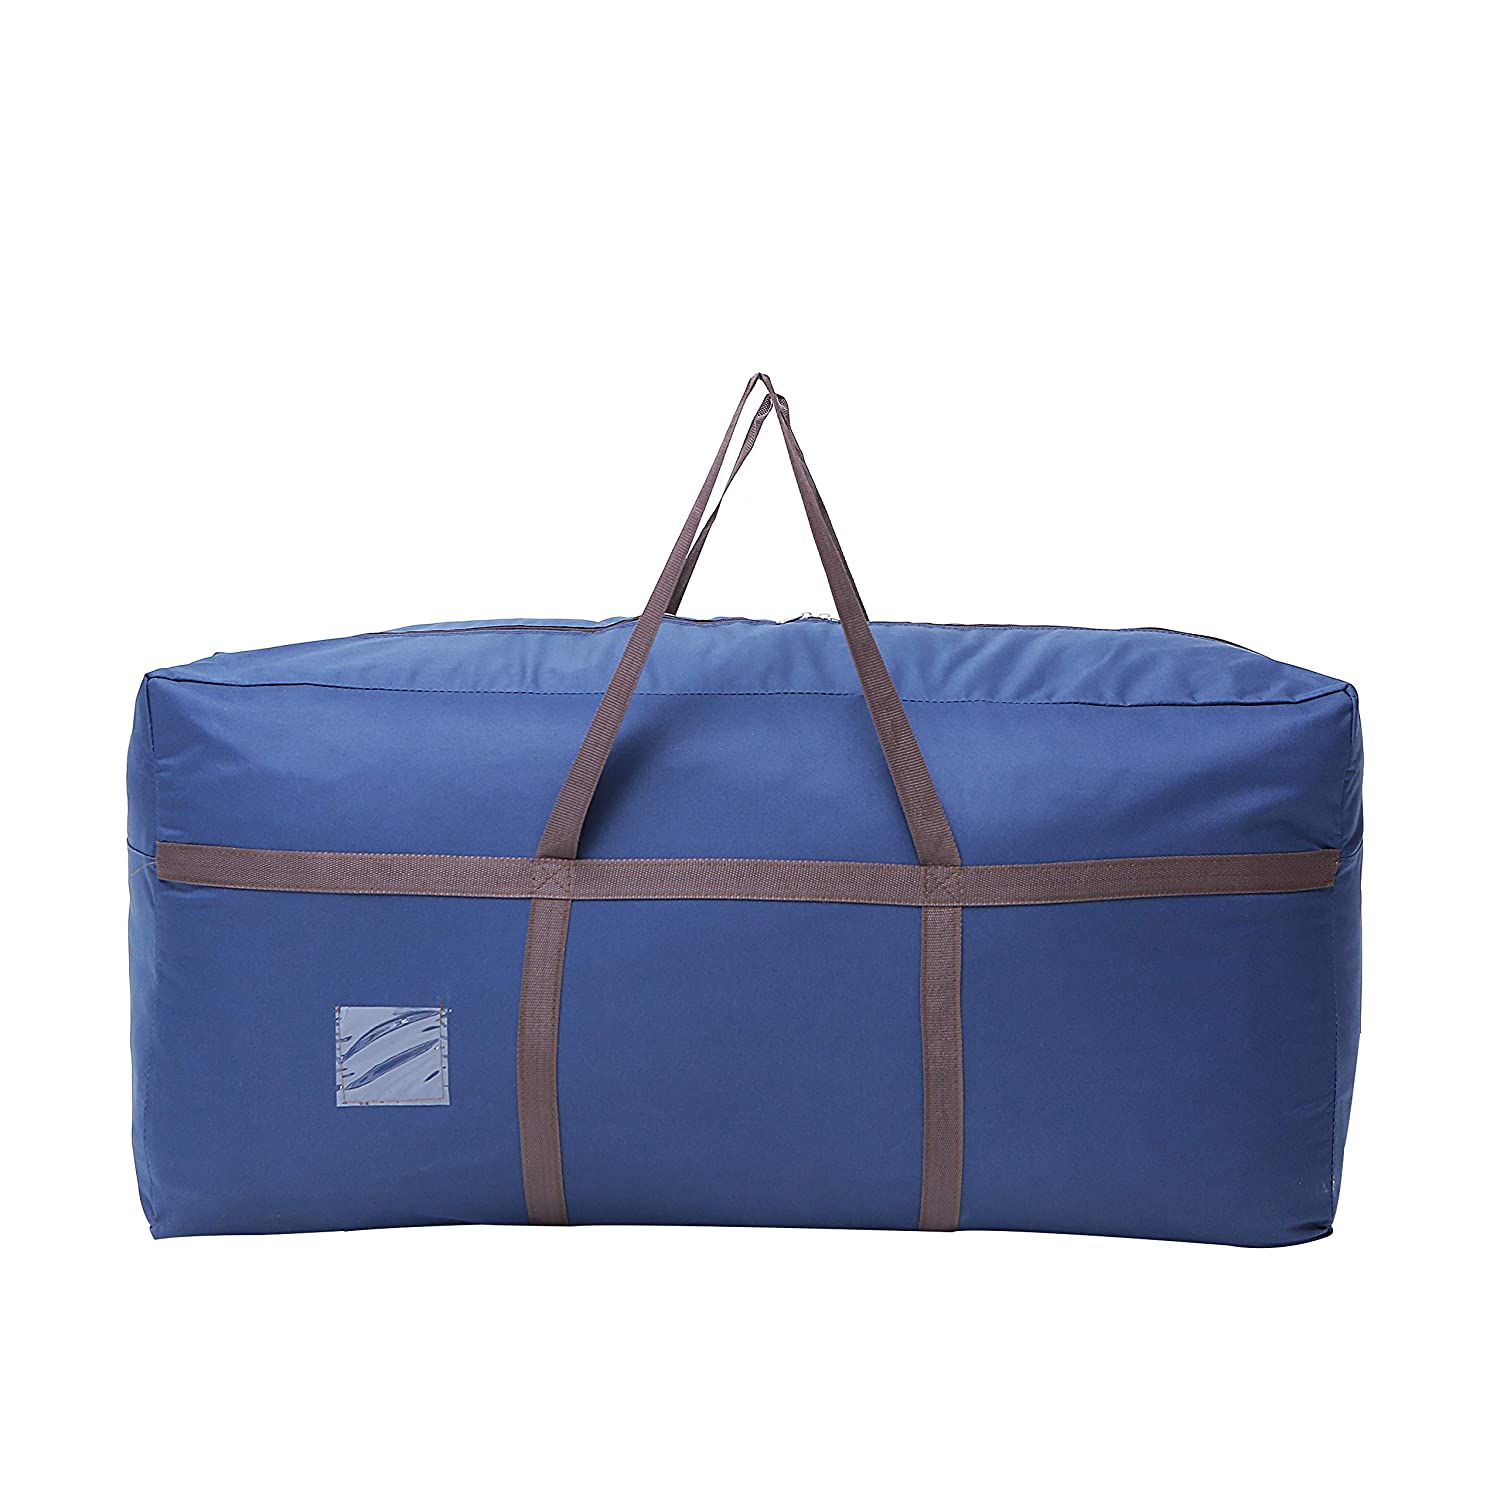 3faeff5e2ae3 Large Blue Duffel Storage Bag - Premium-Quality Heavy Duty 600D Polyester  Oxford Cloth with Handles...